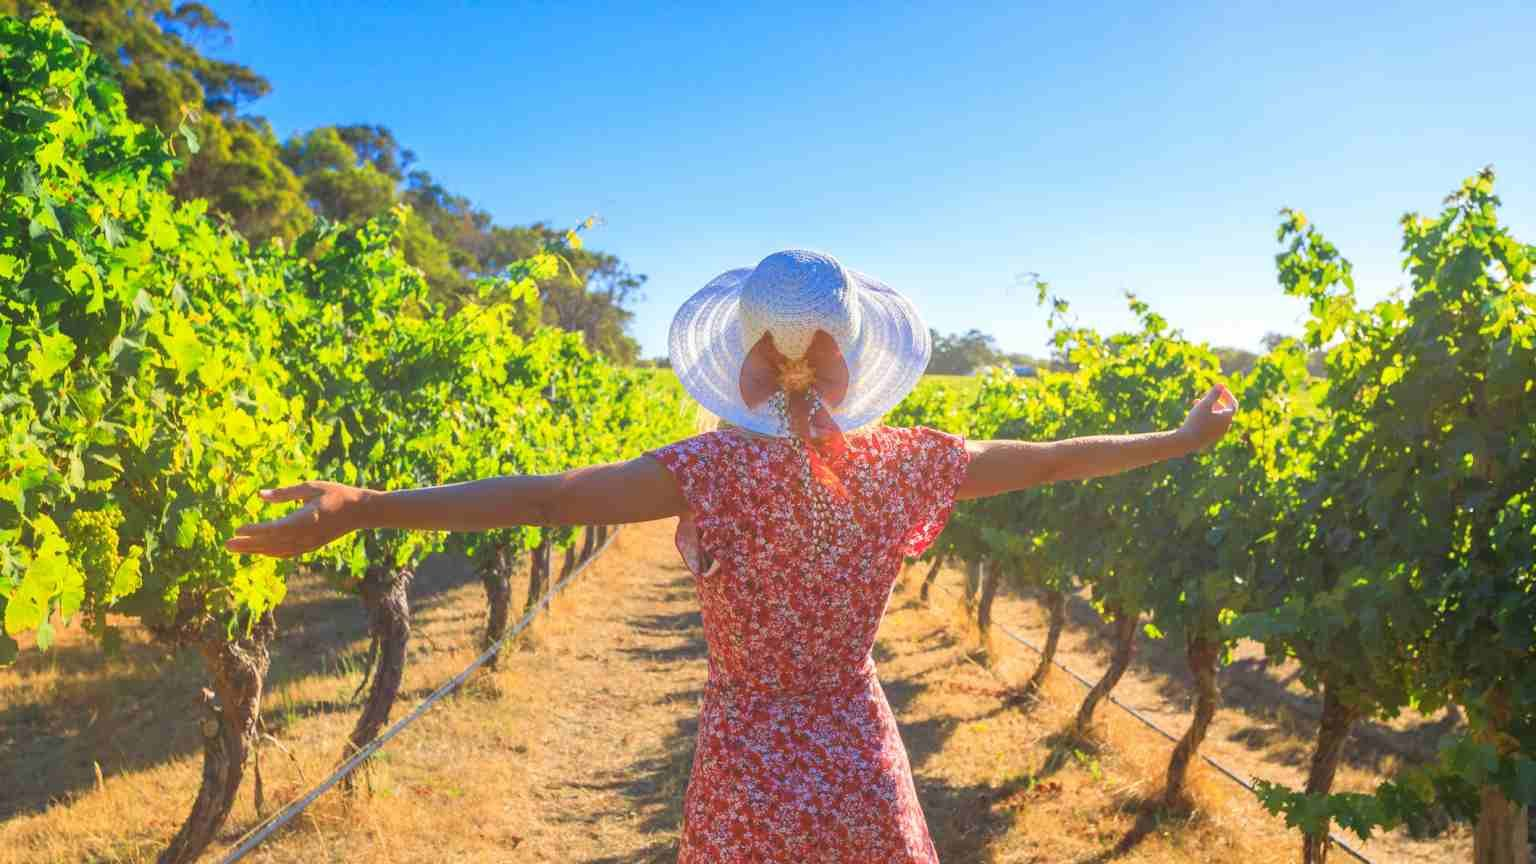 Australian vineyard. Carefree blonde woman with open arms among the rows of grapes, enjoys the harvest in Margaret River known as the wine region in Western Australia. (Australian vineyard. Carefree blonde woman with open arms among the rows of grapes